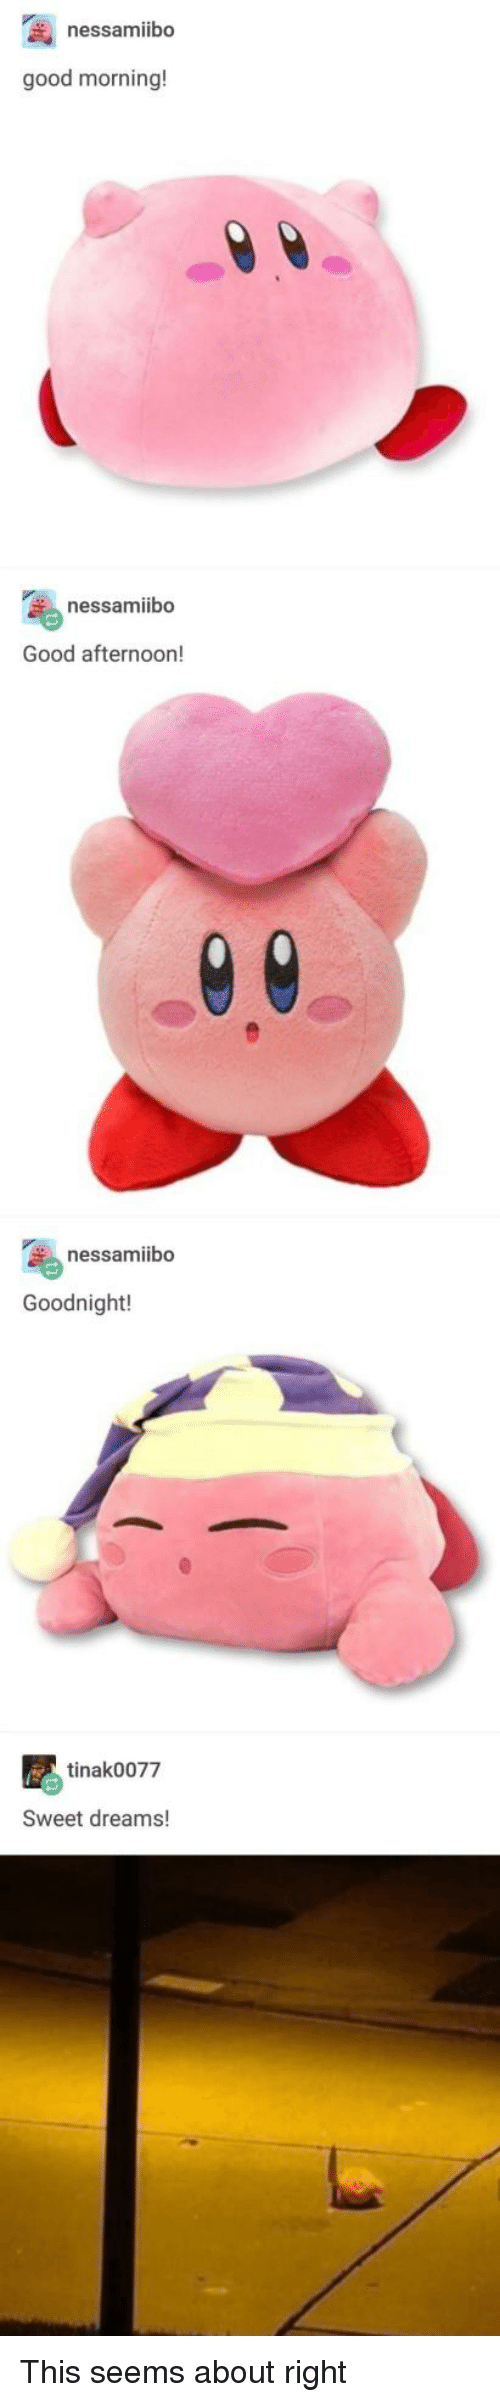 Good Morning, Good, and Dreams: nessamibo  good morning!  nessamiibo  Good afternoon!  nessamiibo  Goodnight!  tinak0077  Sweet dreams! This seems about right